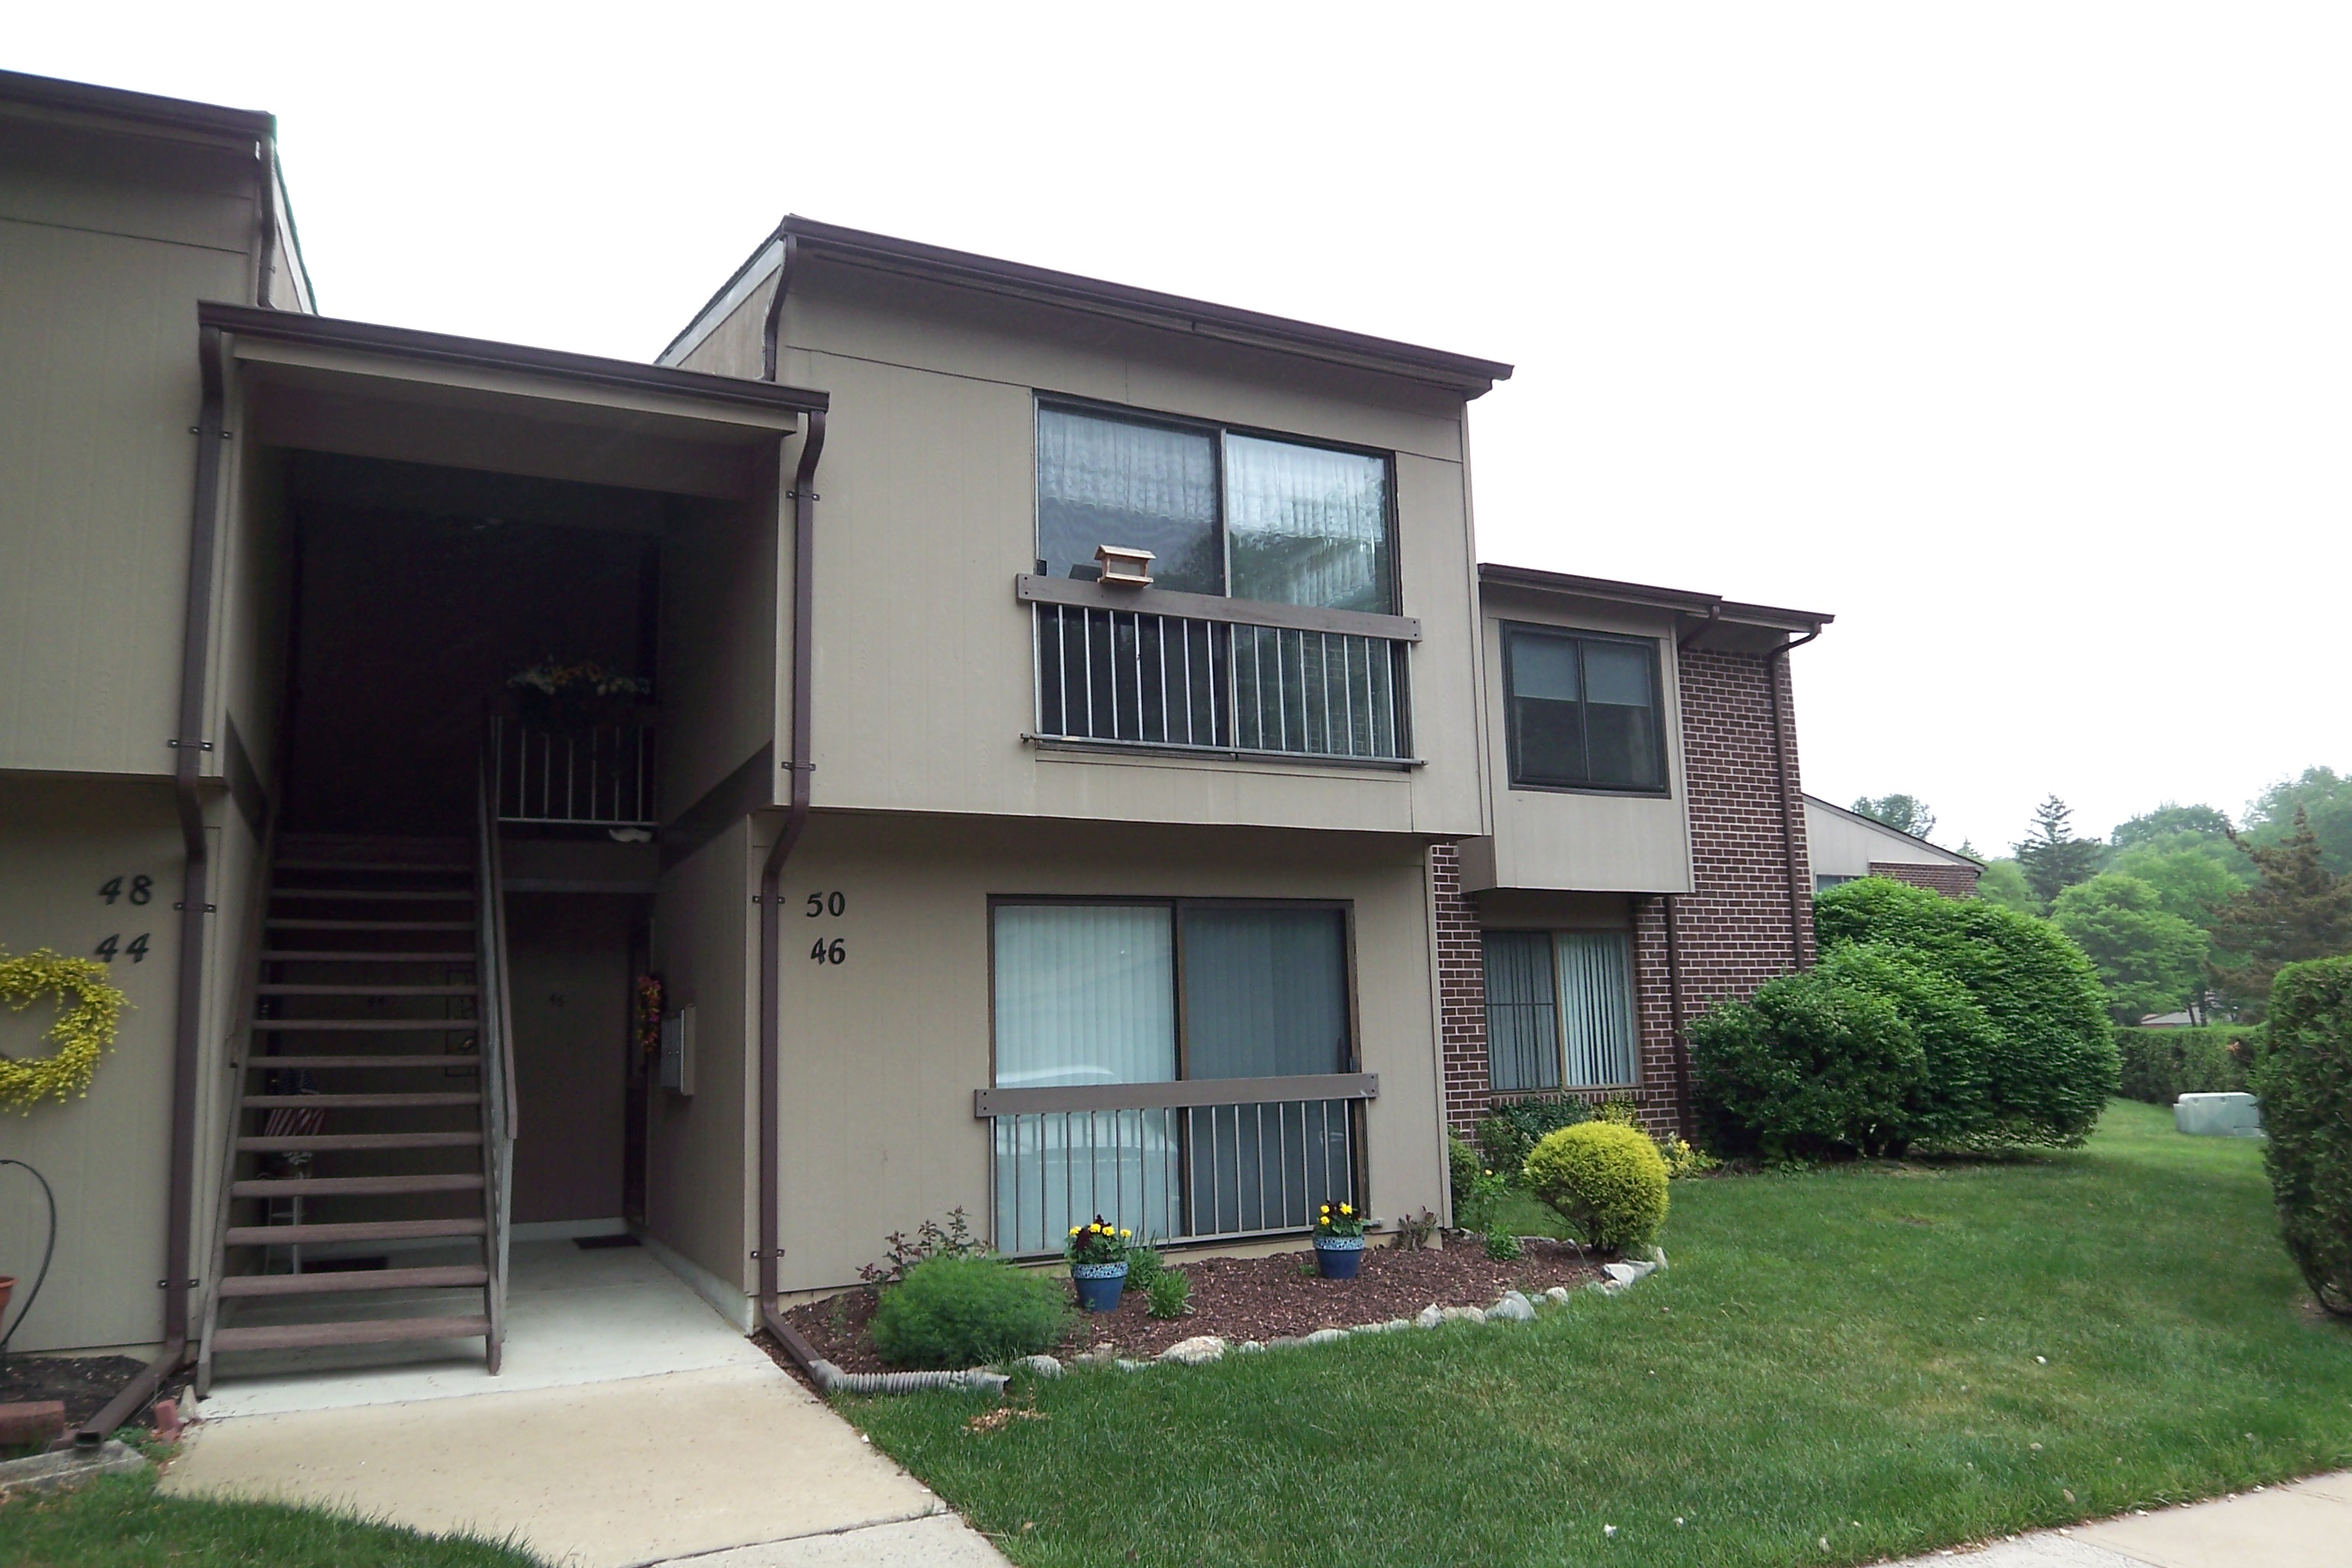 Condominium for Sale at Shadow Lake Village Condo 50 Lexington Court Red Bank, New Jersey 07701 United States